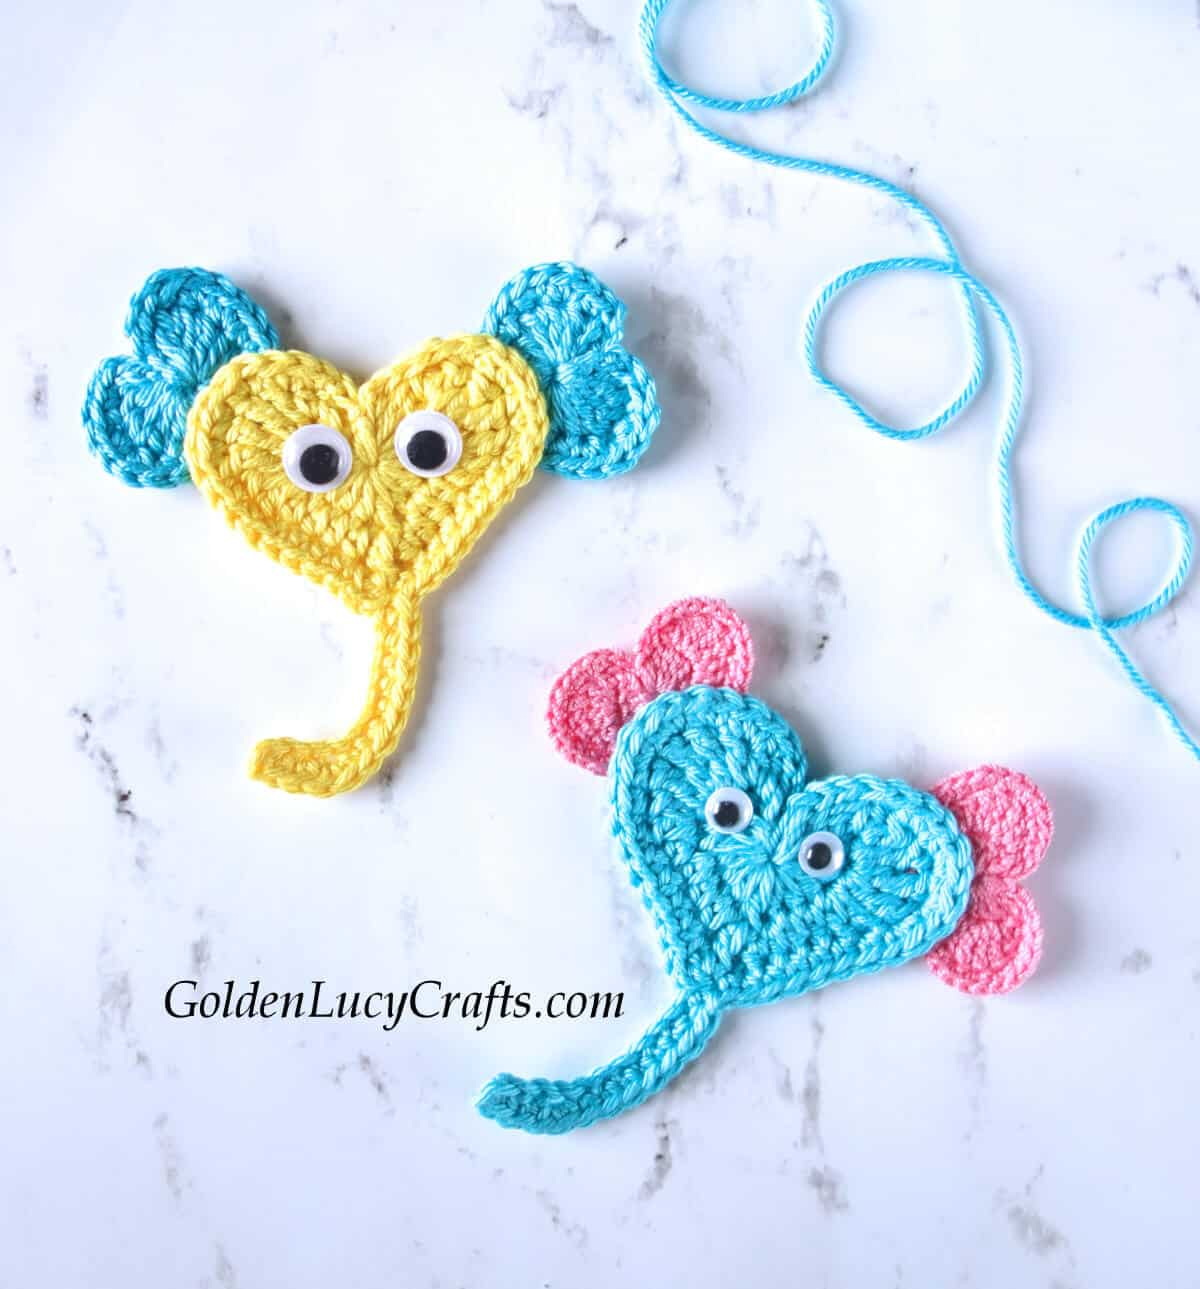 Two crocheted elephant appliques in yellow and blue colors.